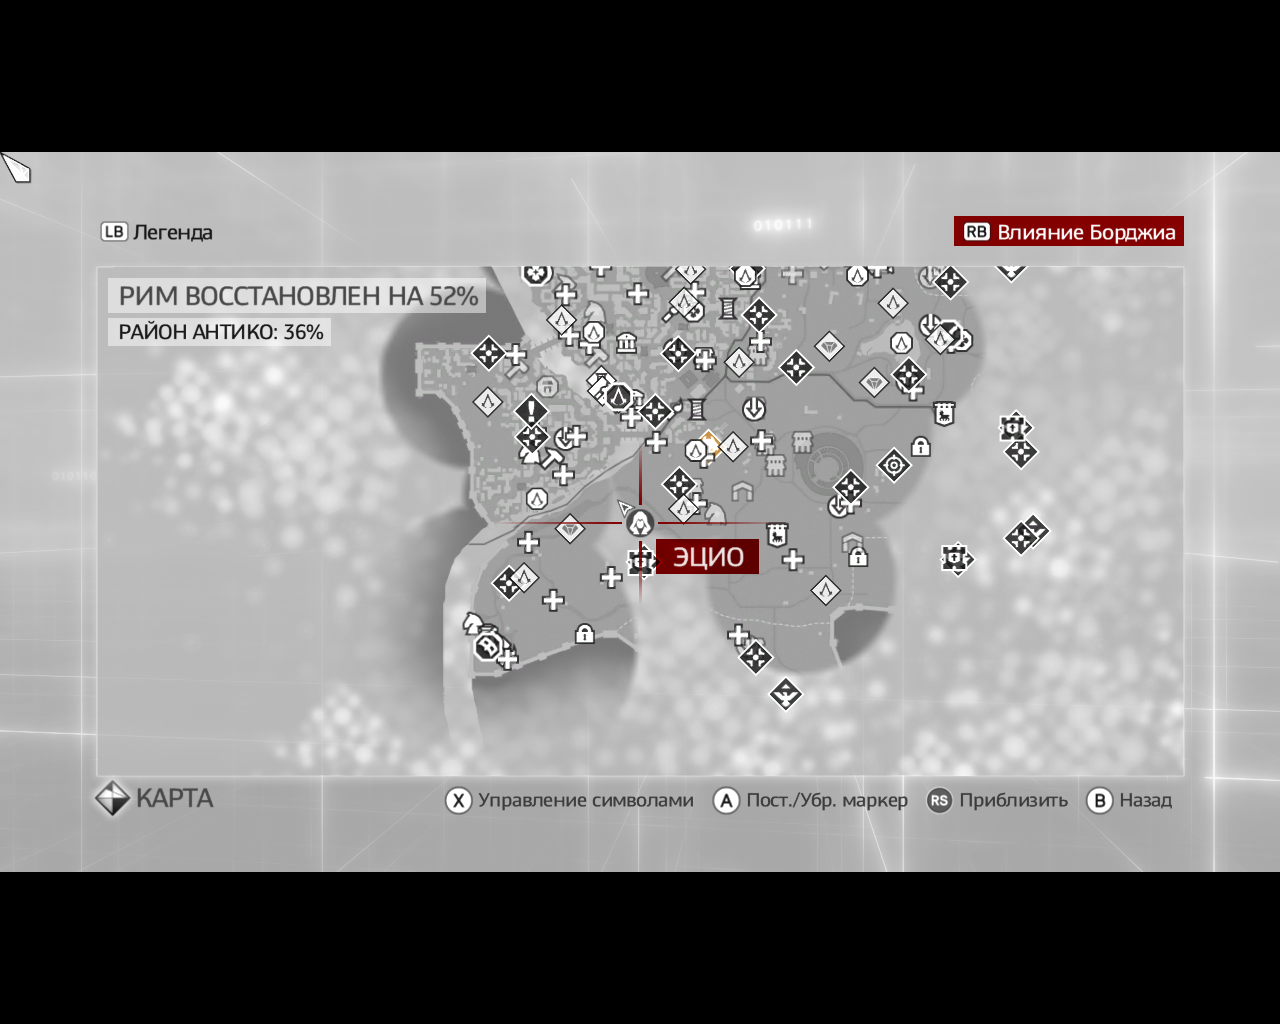 Assassin's Creed: Brotherhood Windows The map is full of various icons